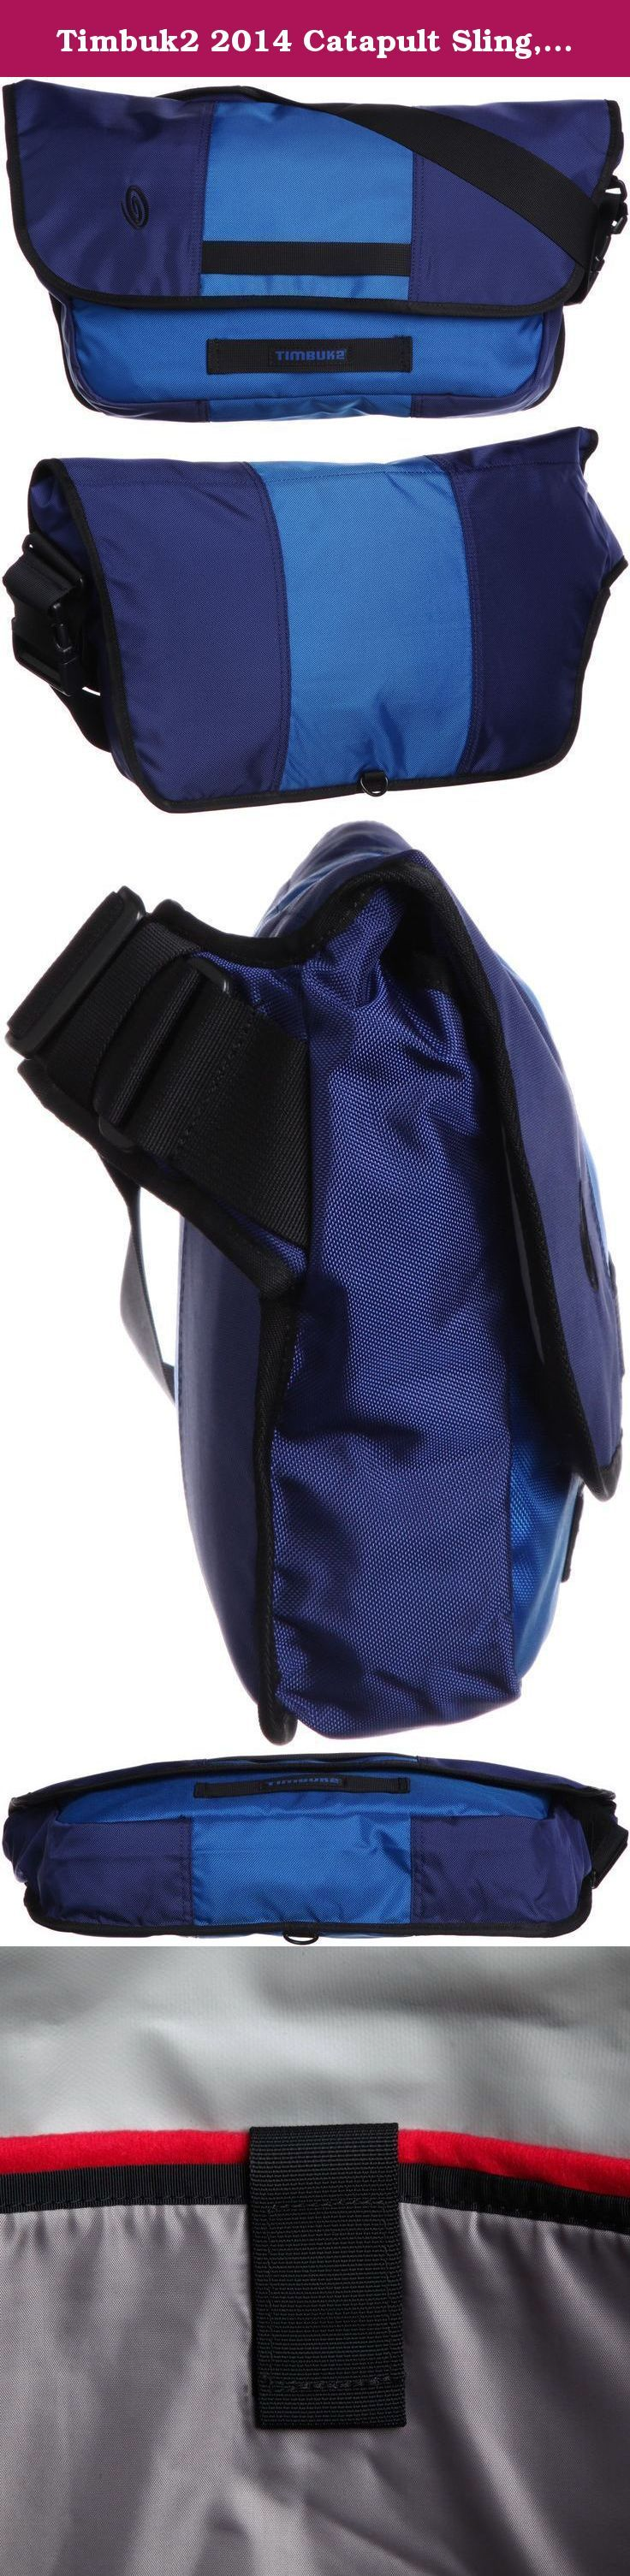 Timbuk2 2014 Catapult Sling, Blue, Large. This ballistic nylon mini-messenger sling does double-duty - cradling your NEW iPad, Kindle or small laptop in plush comfort, while repurposing your U-Lock as a bag latch. Slip it through the front loops and you're off to the races. Your beleaguered back pocket will thank you.